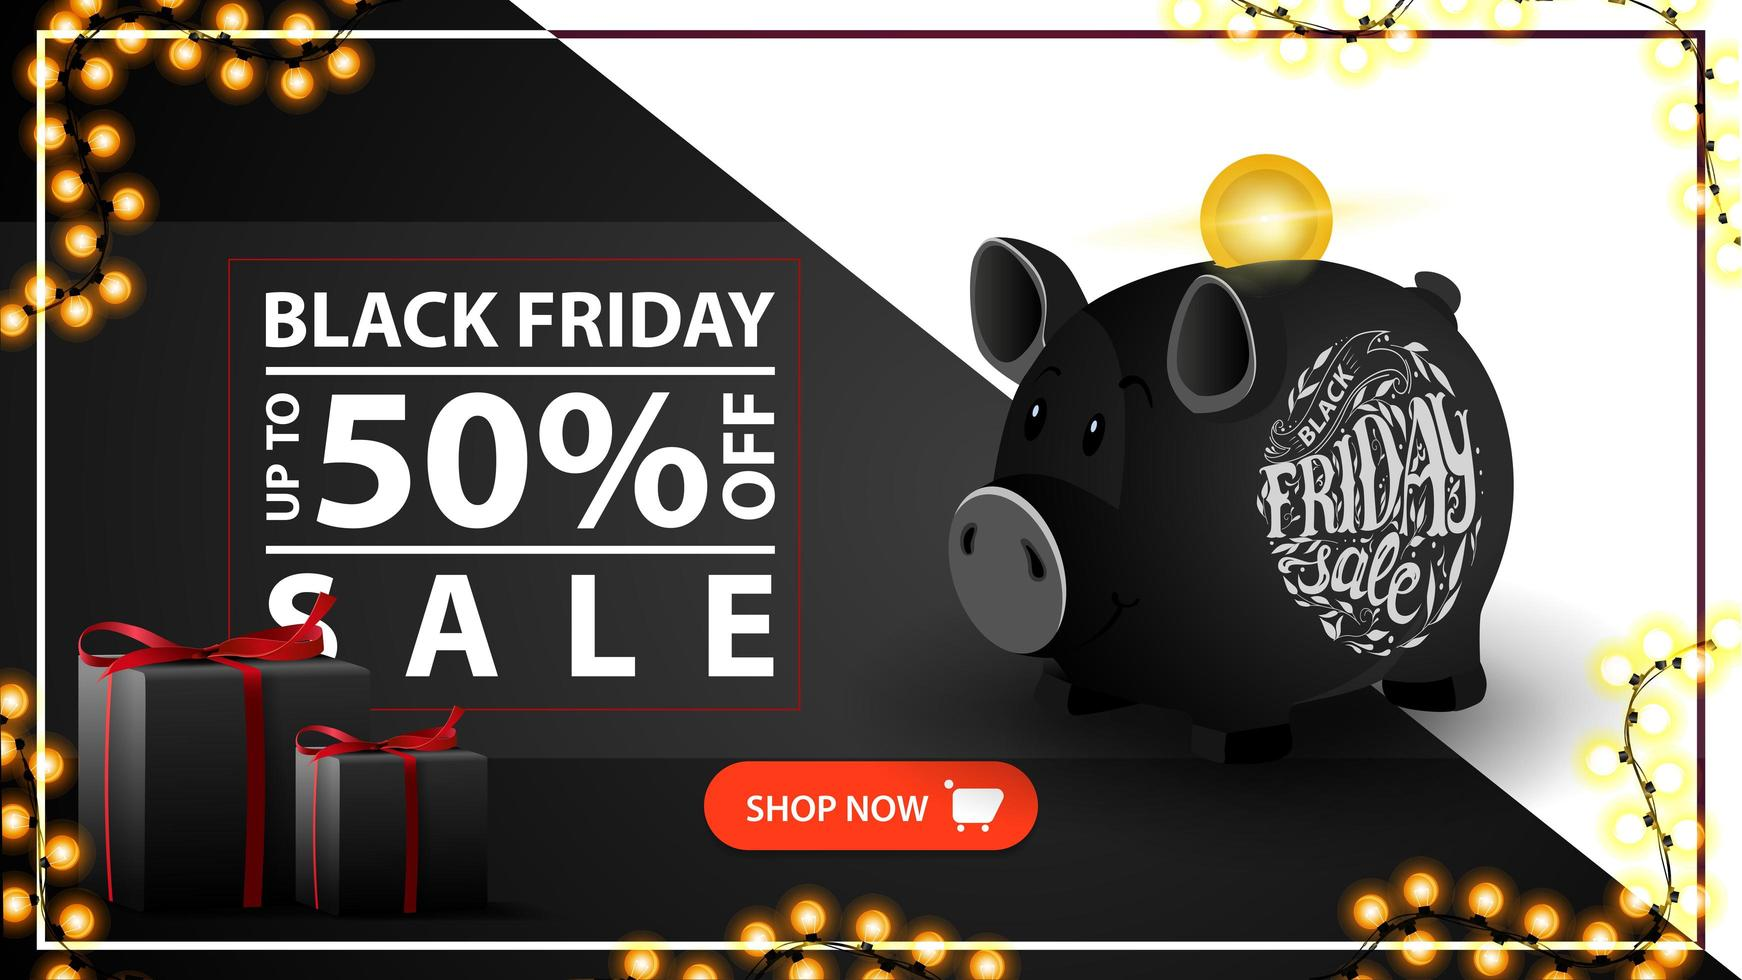 Black Friday sale, up to 50 off. Modern black discount banner with piggy bank vector